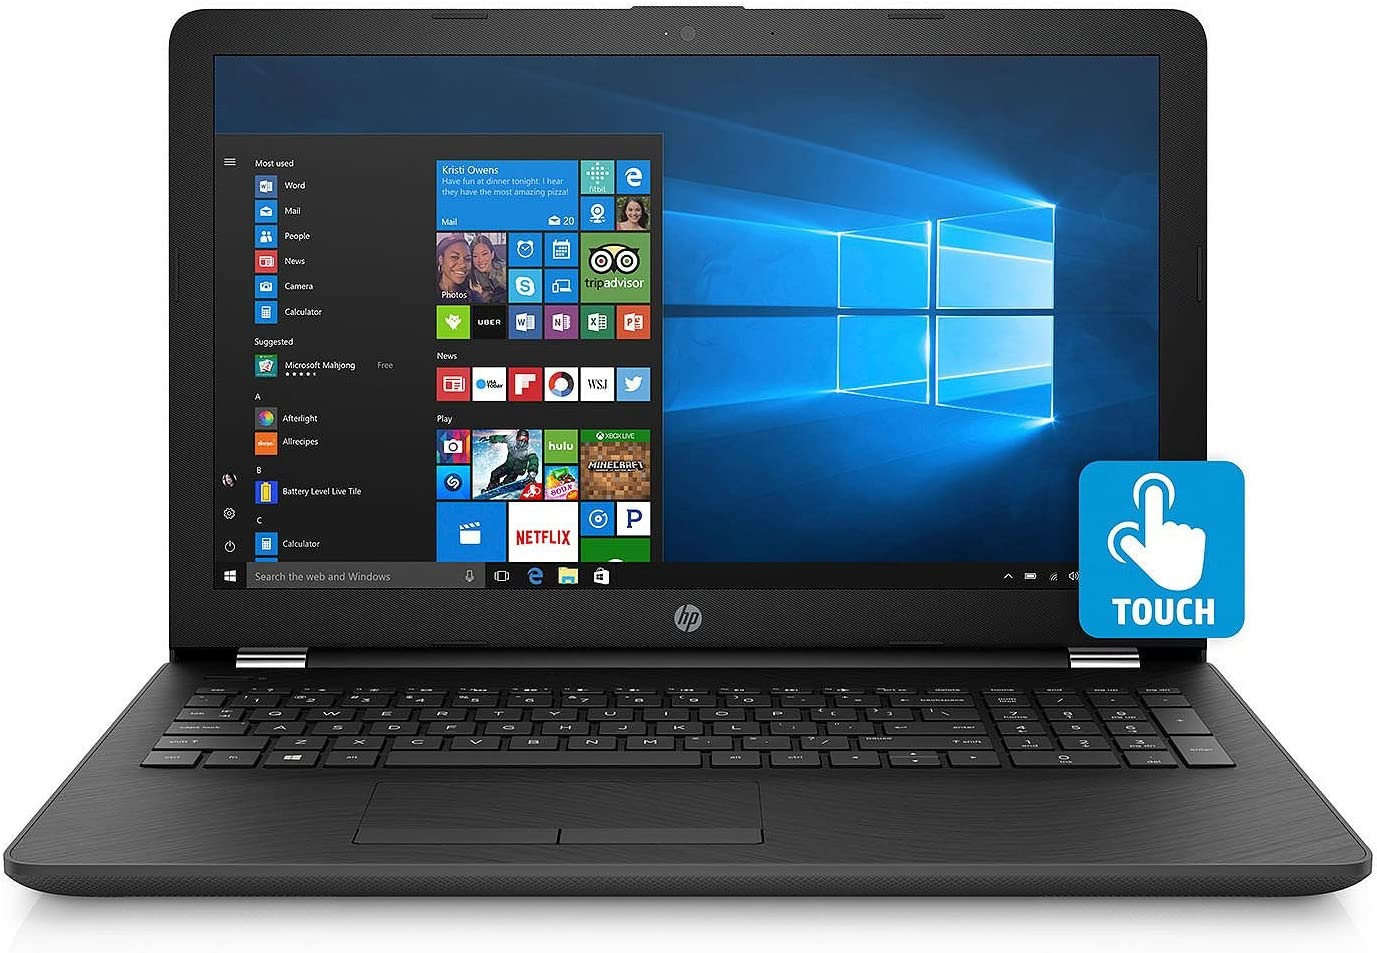 "HP Touchscreen 15.6"" HD Notebook - AMD A9-9420 DC Processor - 8GB Memory - 2TB Hard Drive - Optical Drive - HD Webcam - Smoke Gray"